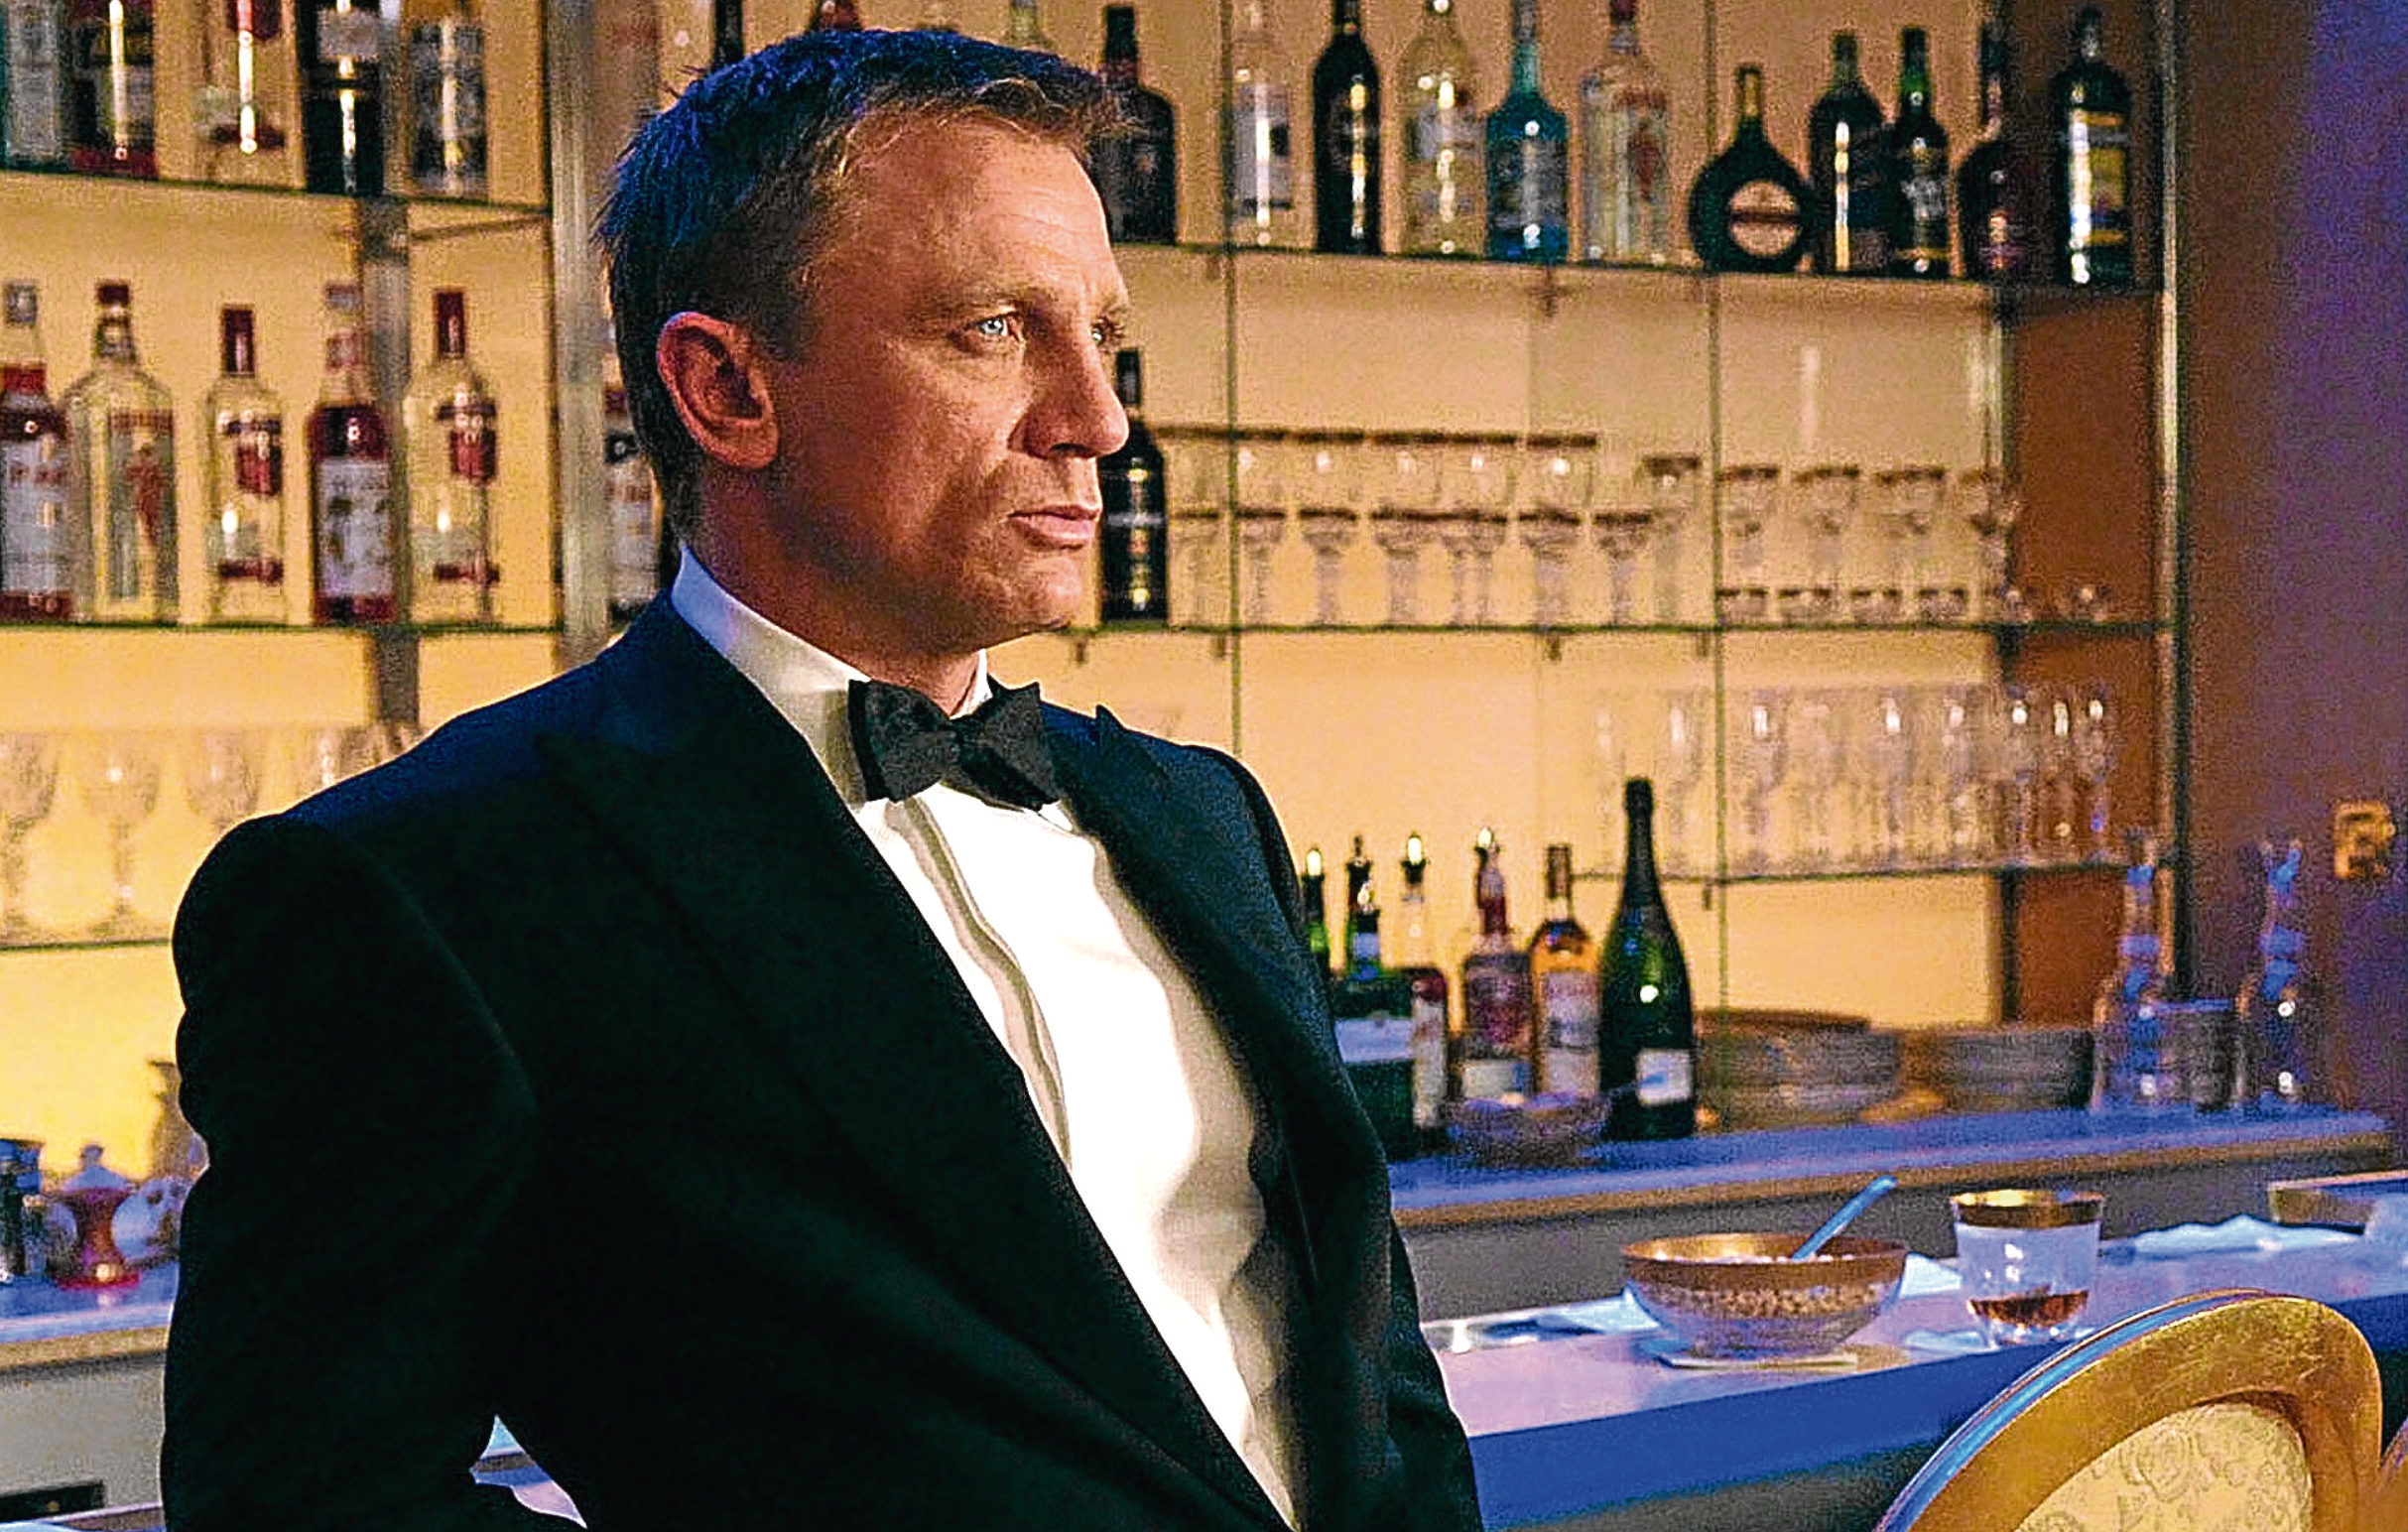 Daniel Craig in Casino Royale (Allstar/UNITED ARTISTS/COLUMBIA PICTURES)